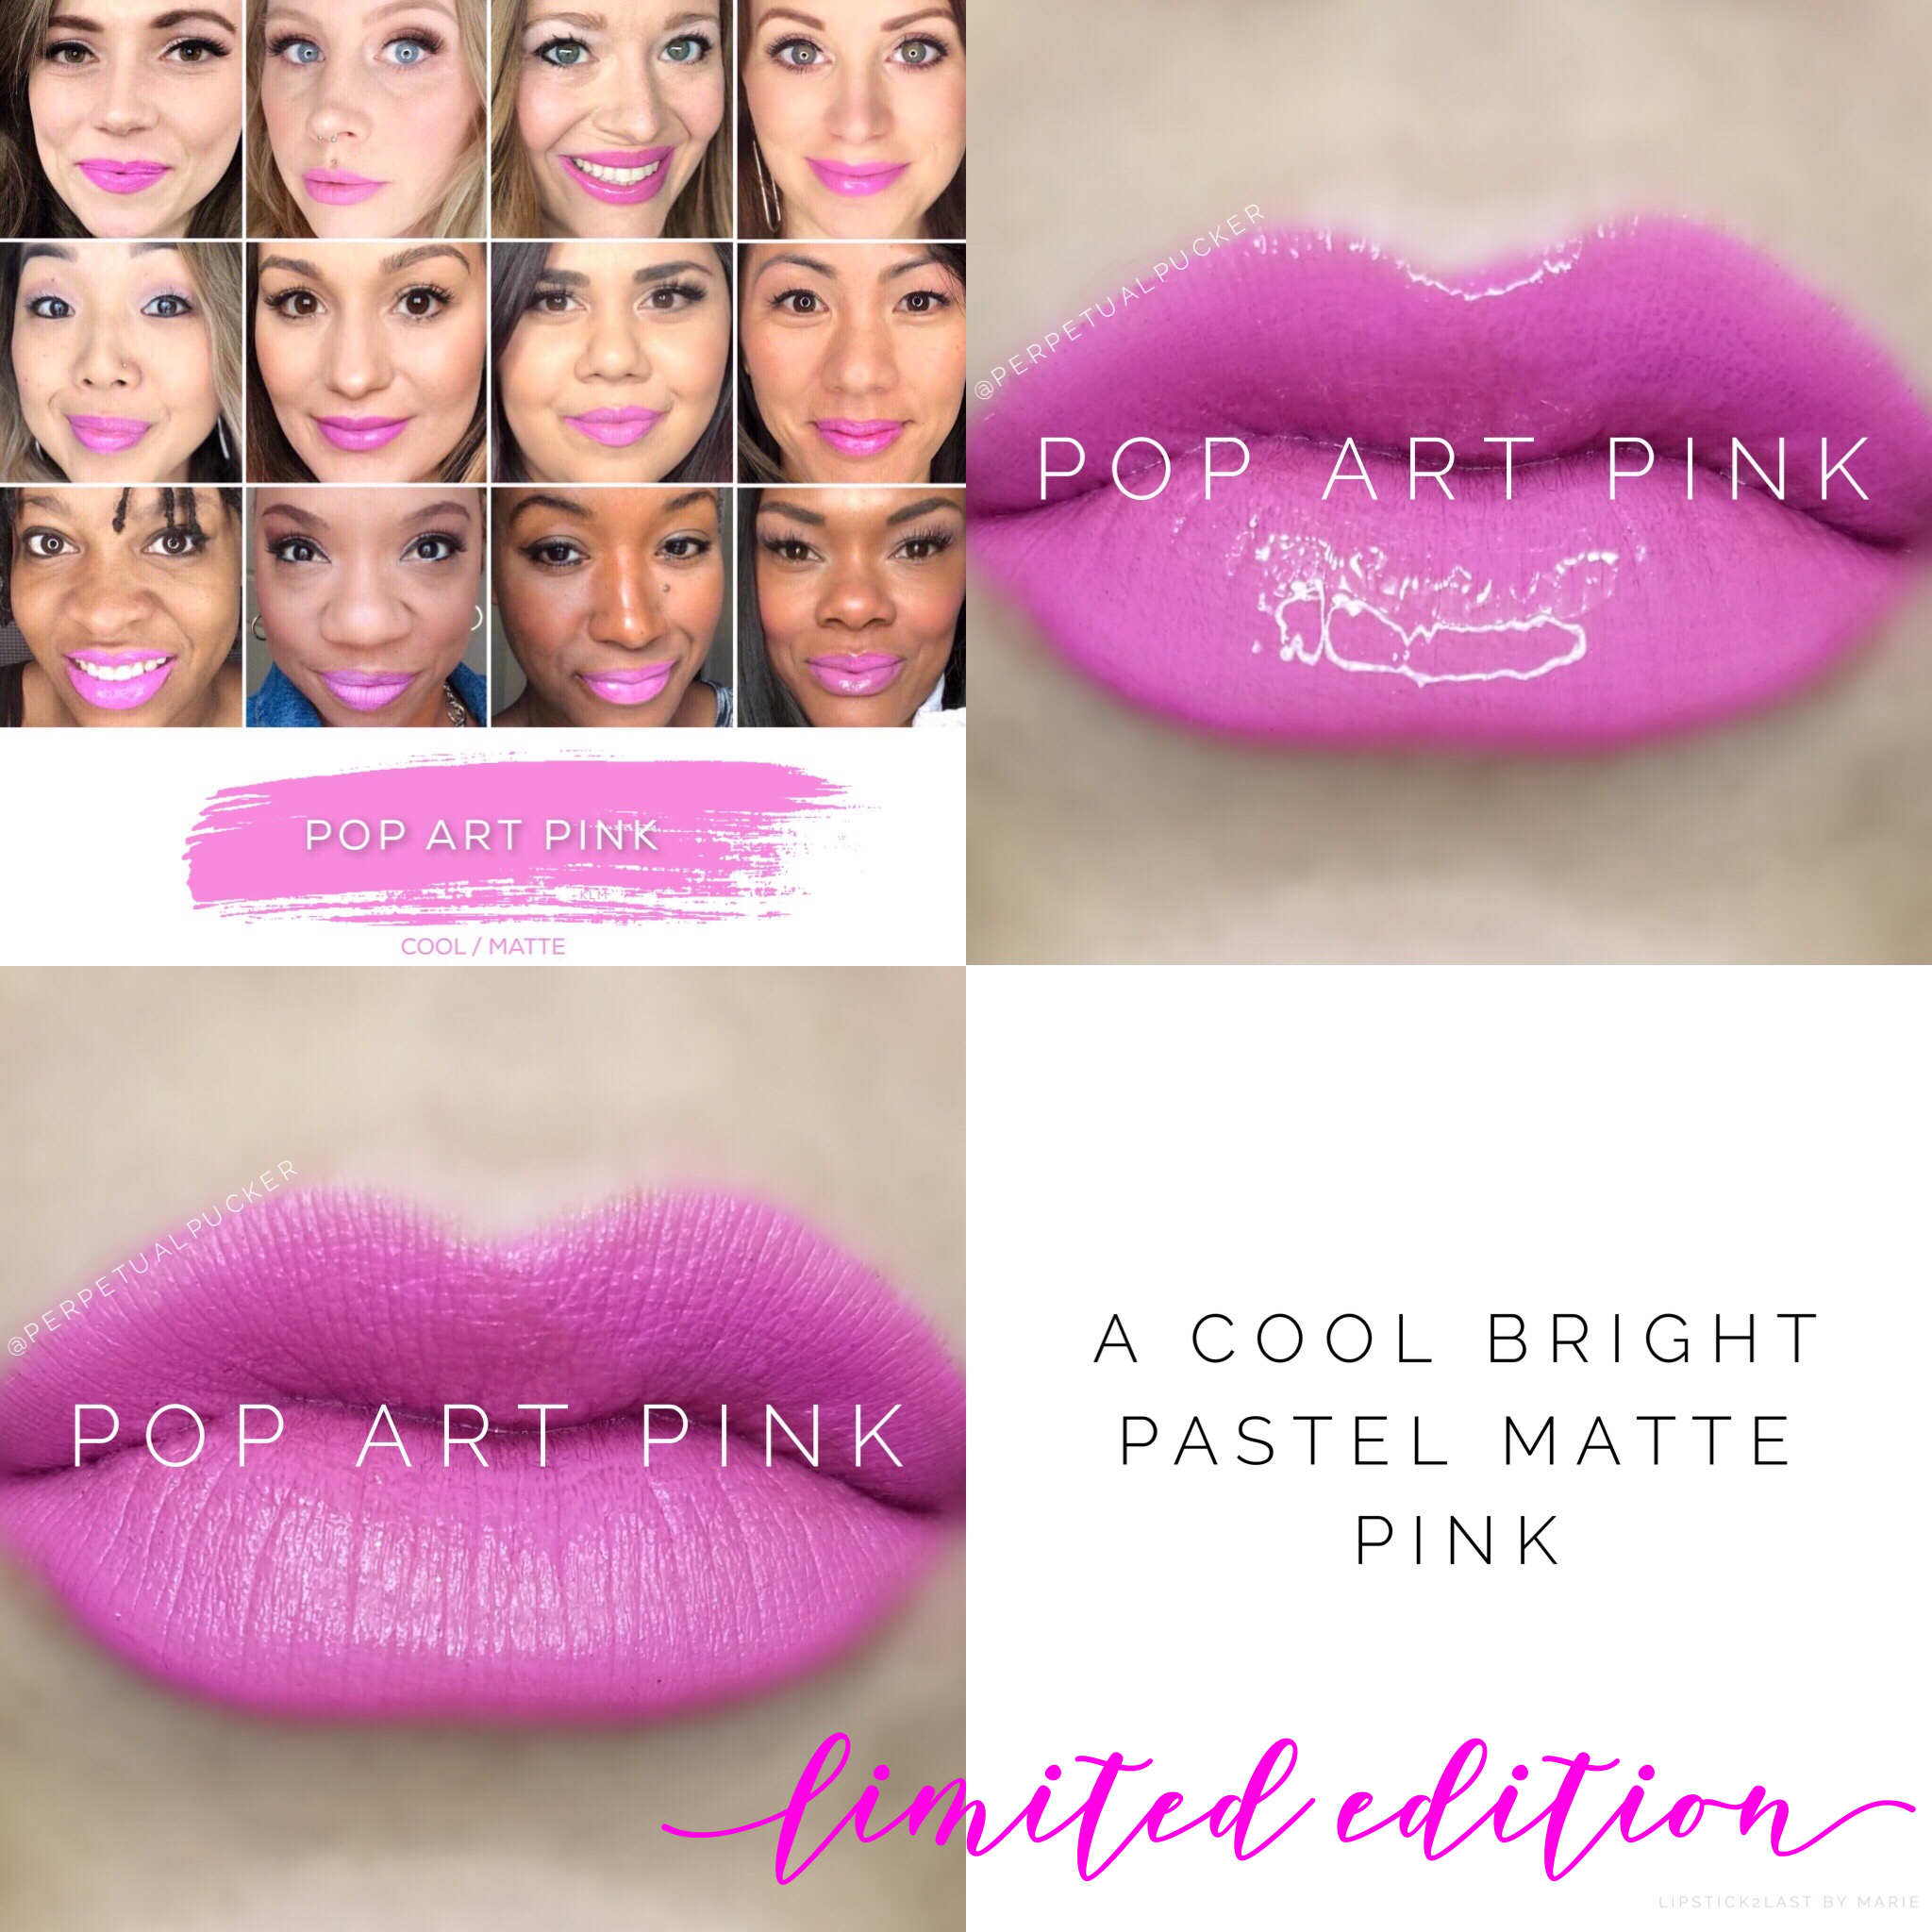 Pop Art Pink LipSense collage with lips and selfies #popartpink